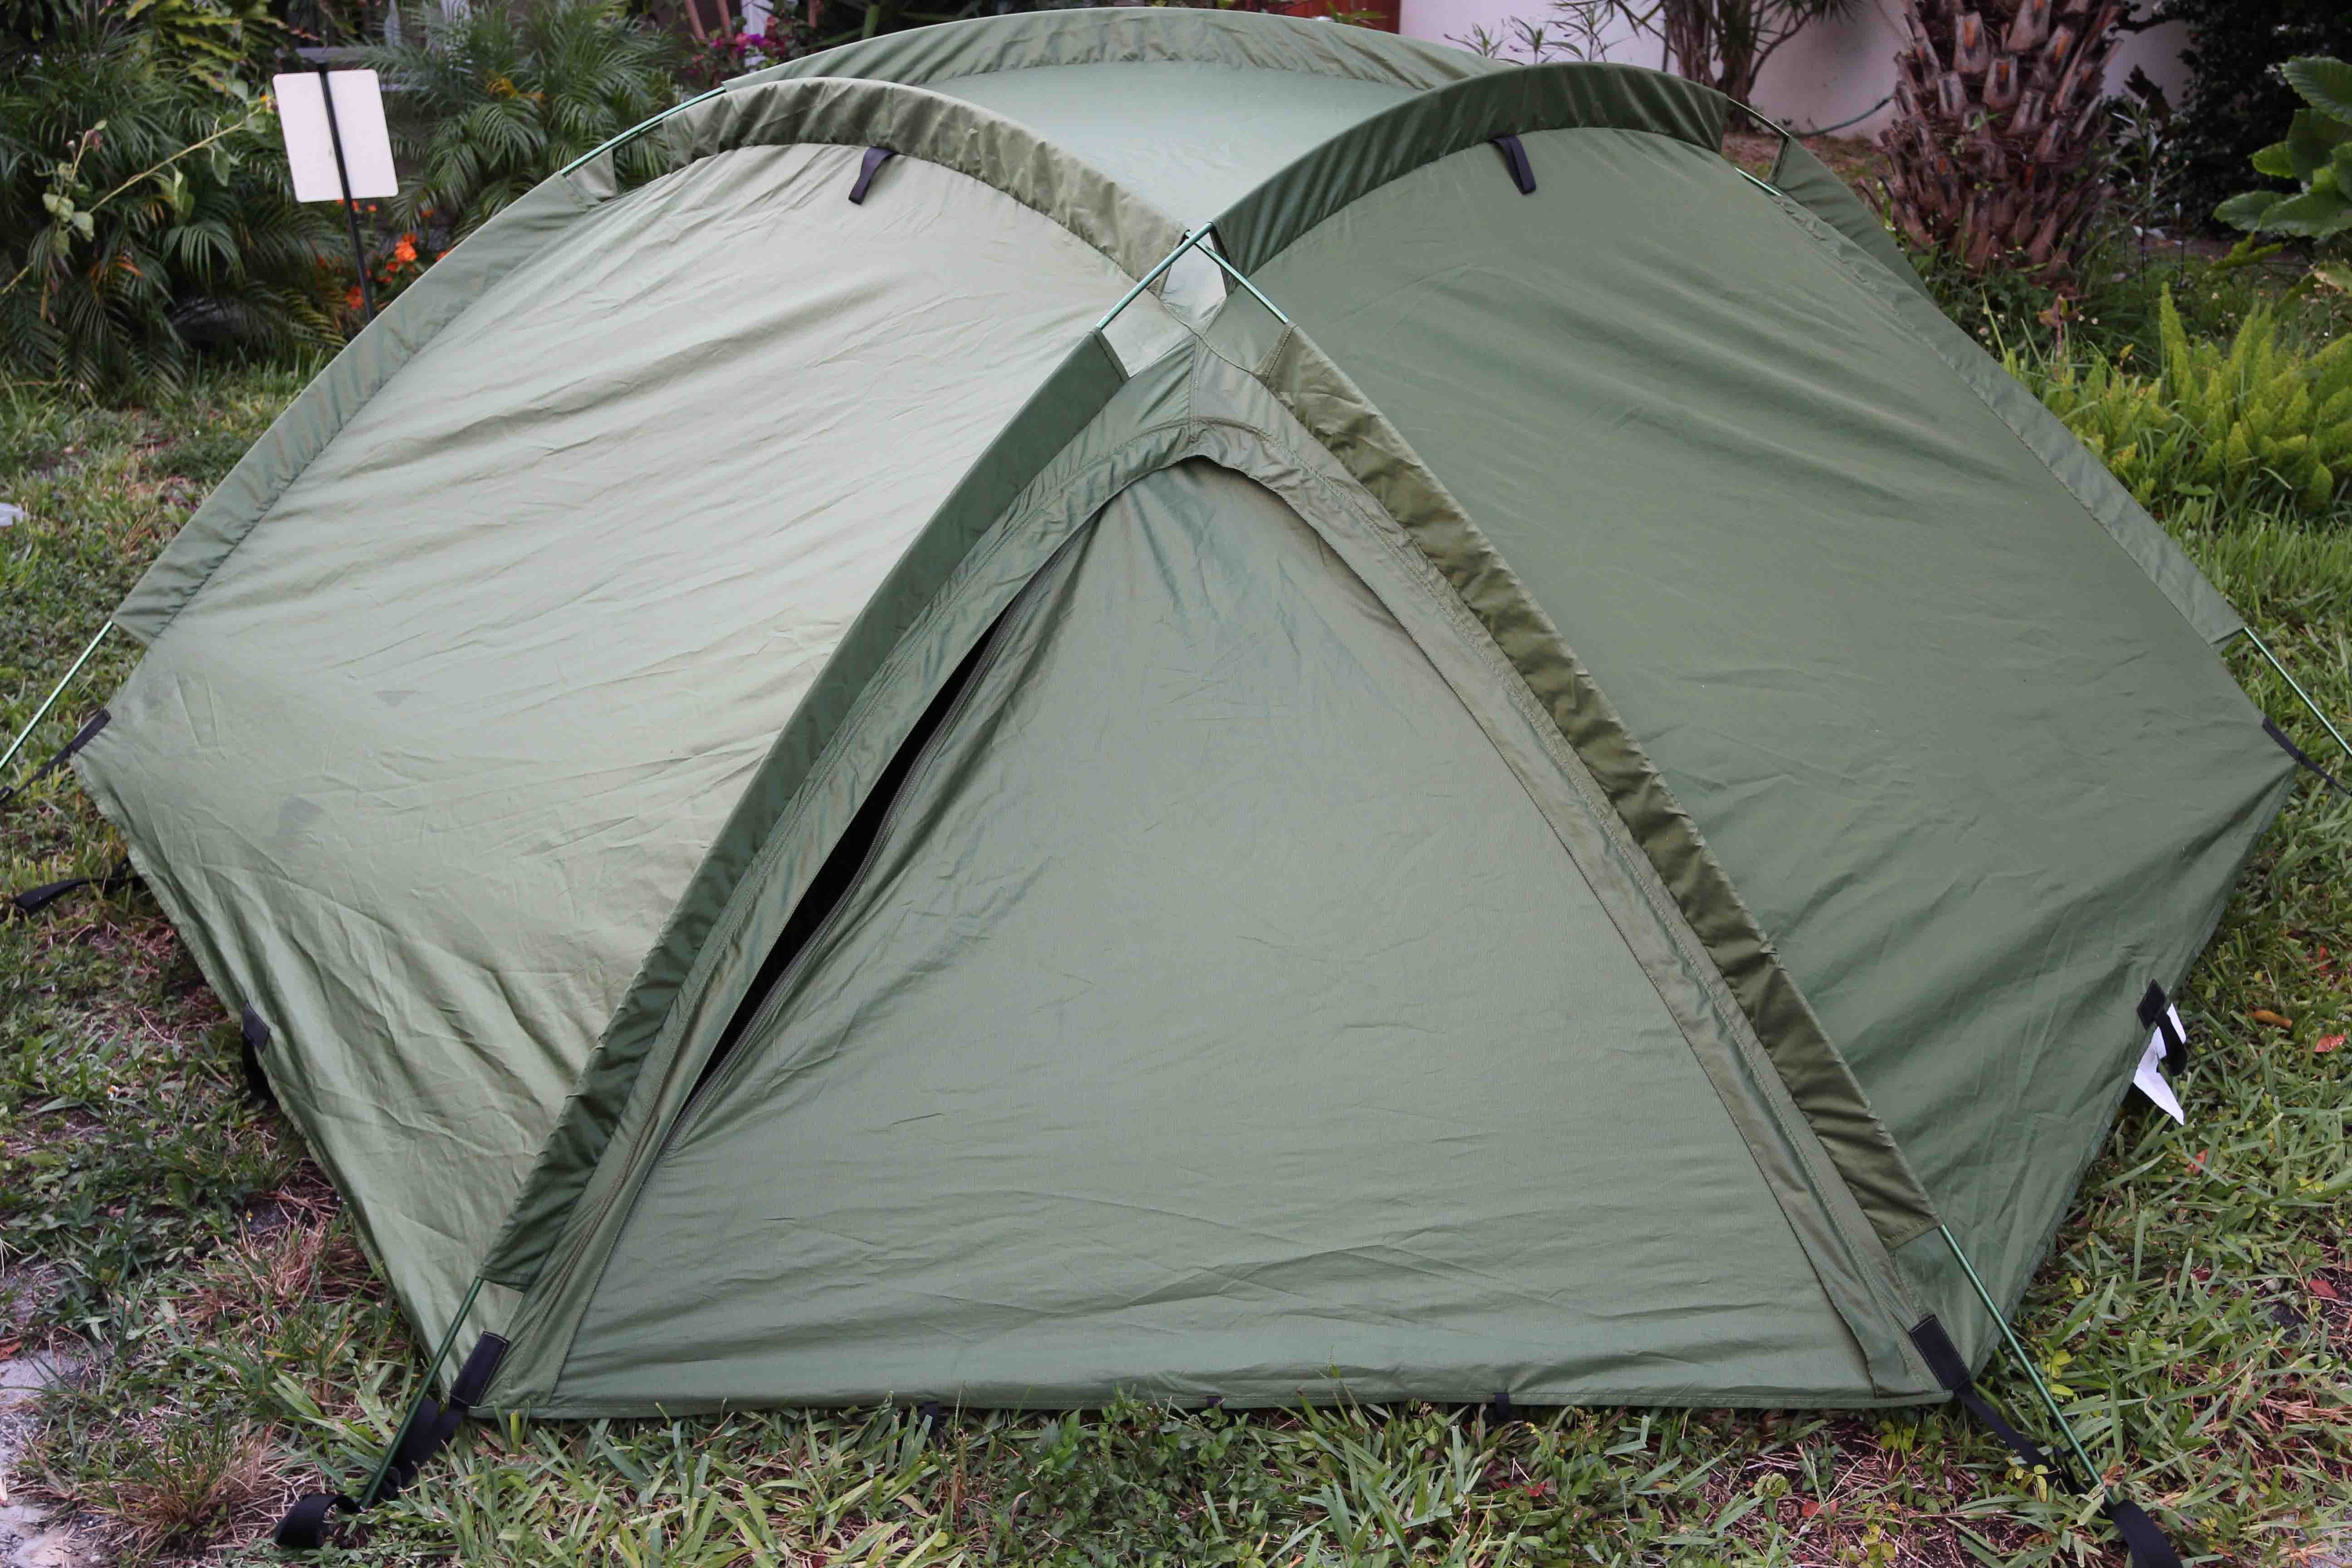 Eureka US Military 4 Man Extreme Cold Weather Tent (ECWT) - Hanku0027s Surplus & Eureka US Military 4 Man Extreme Cold Weather Tent (ECWT) - Hanku0027s ...